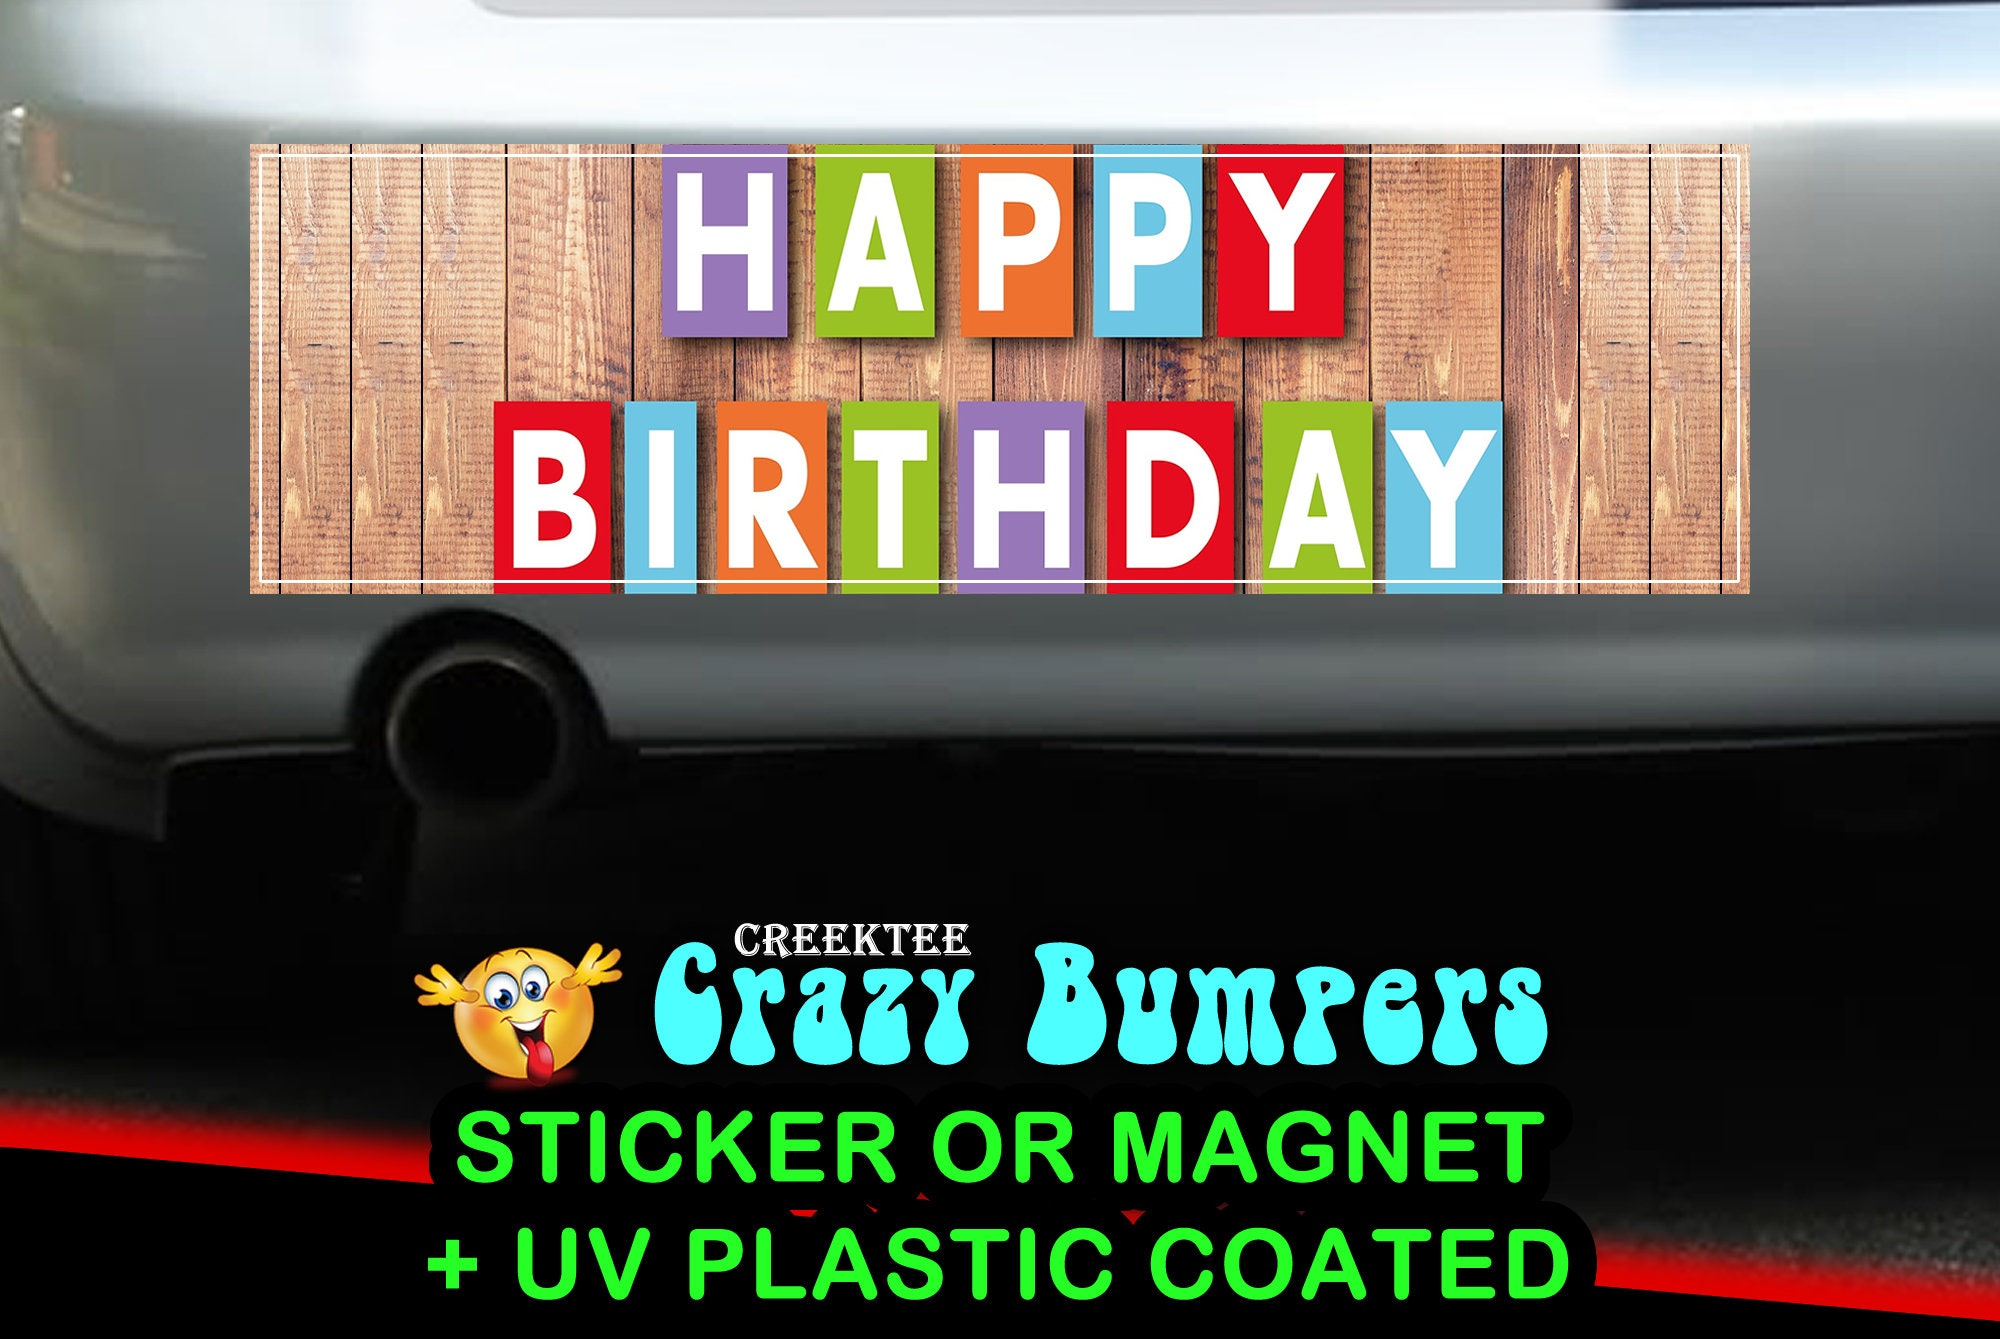 CAD$9.74 - Happy Birthday 10 x 3 Bumper Sticker or Magnetic Bumper Sticker Available